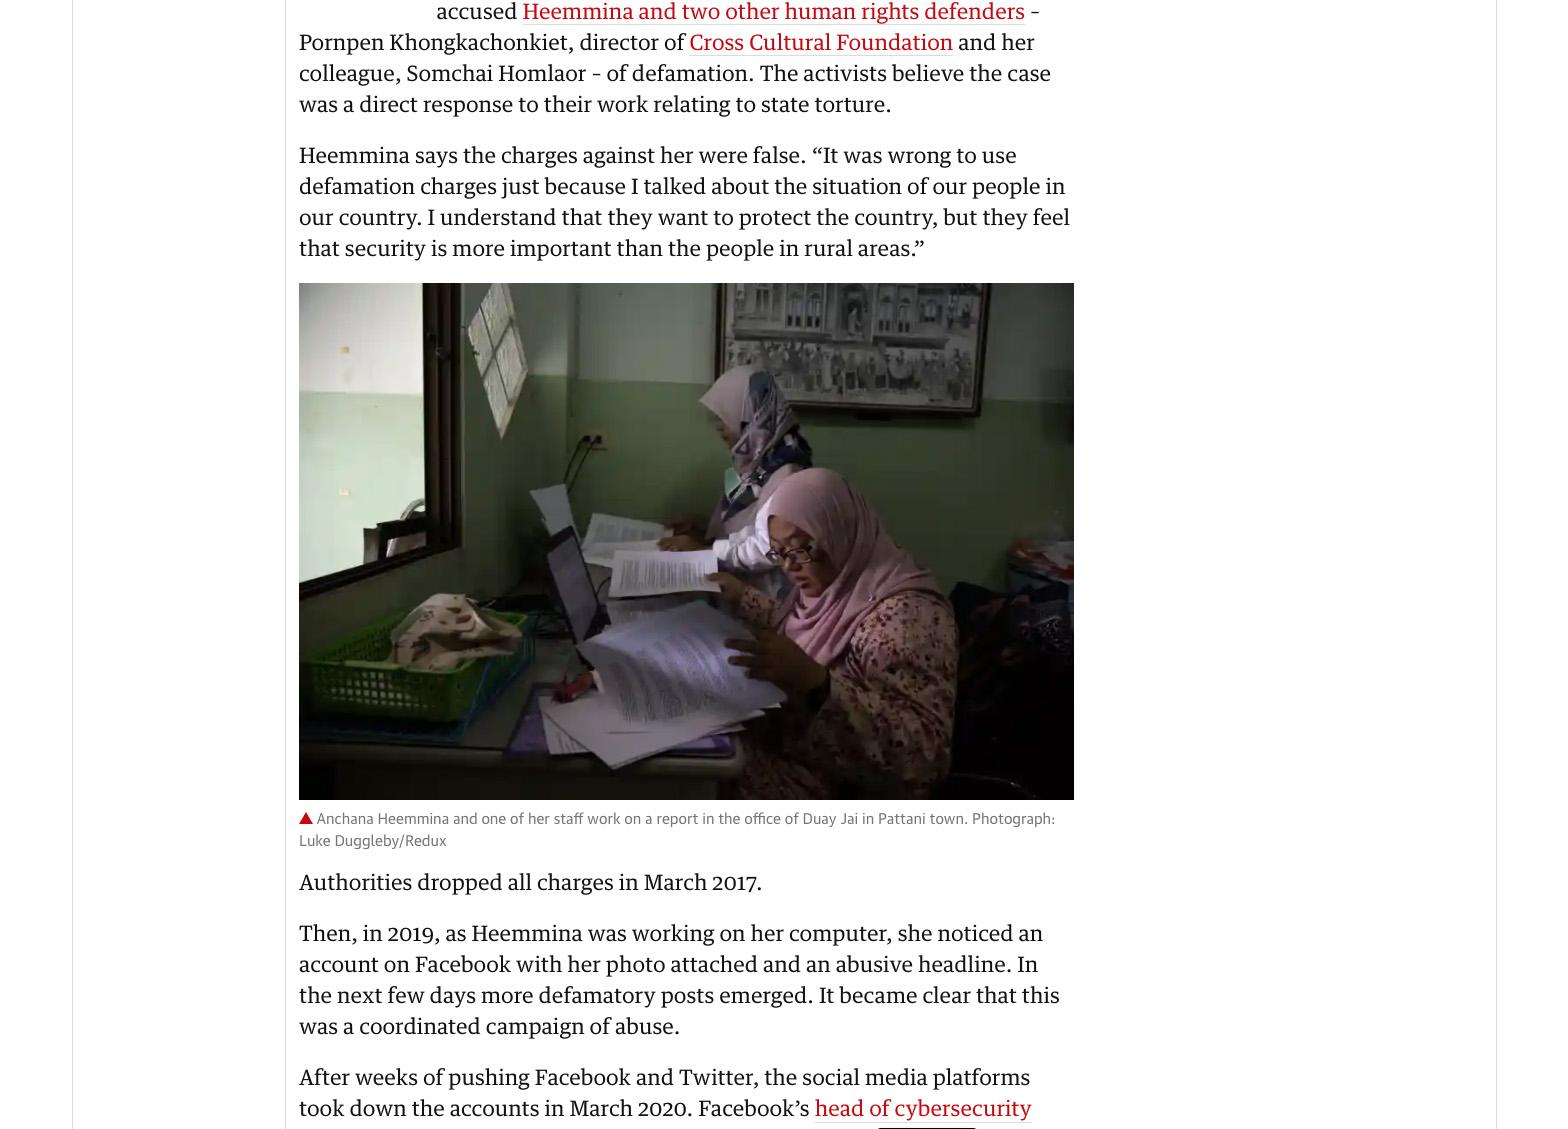 Art and Documentary Photography - Loading https-__www.theguardian.com_global-development_2021_aug_17_the-woman-on-a-mission-to-expose-torture-in-thailands-troubled-south_3.jpg